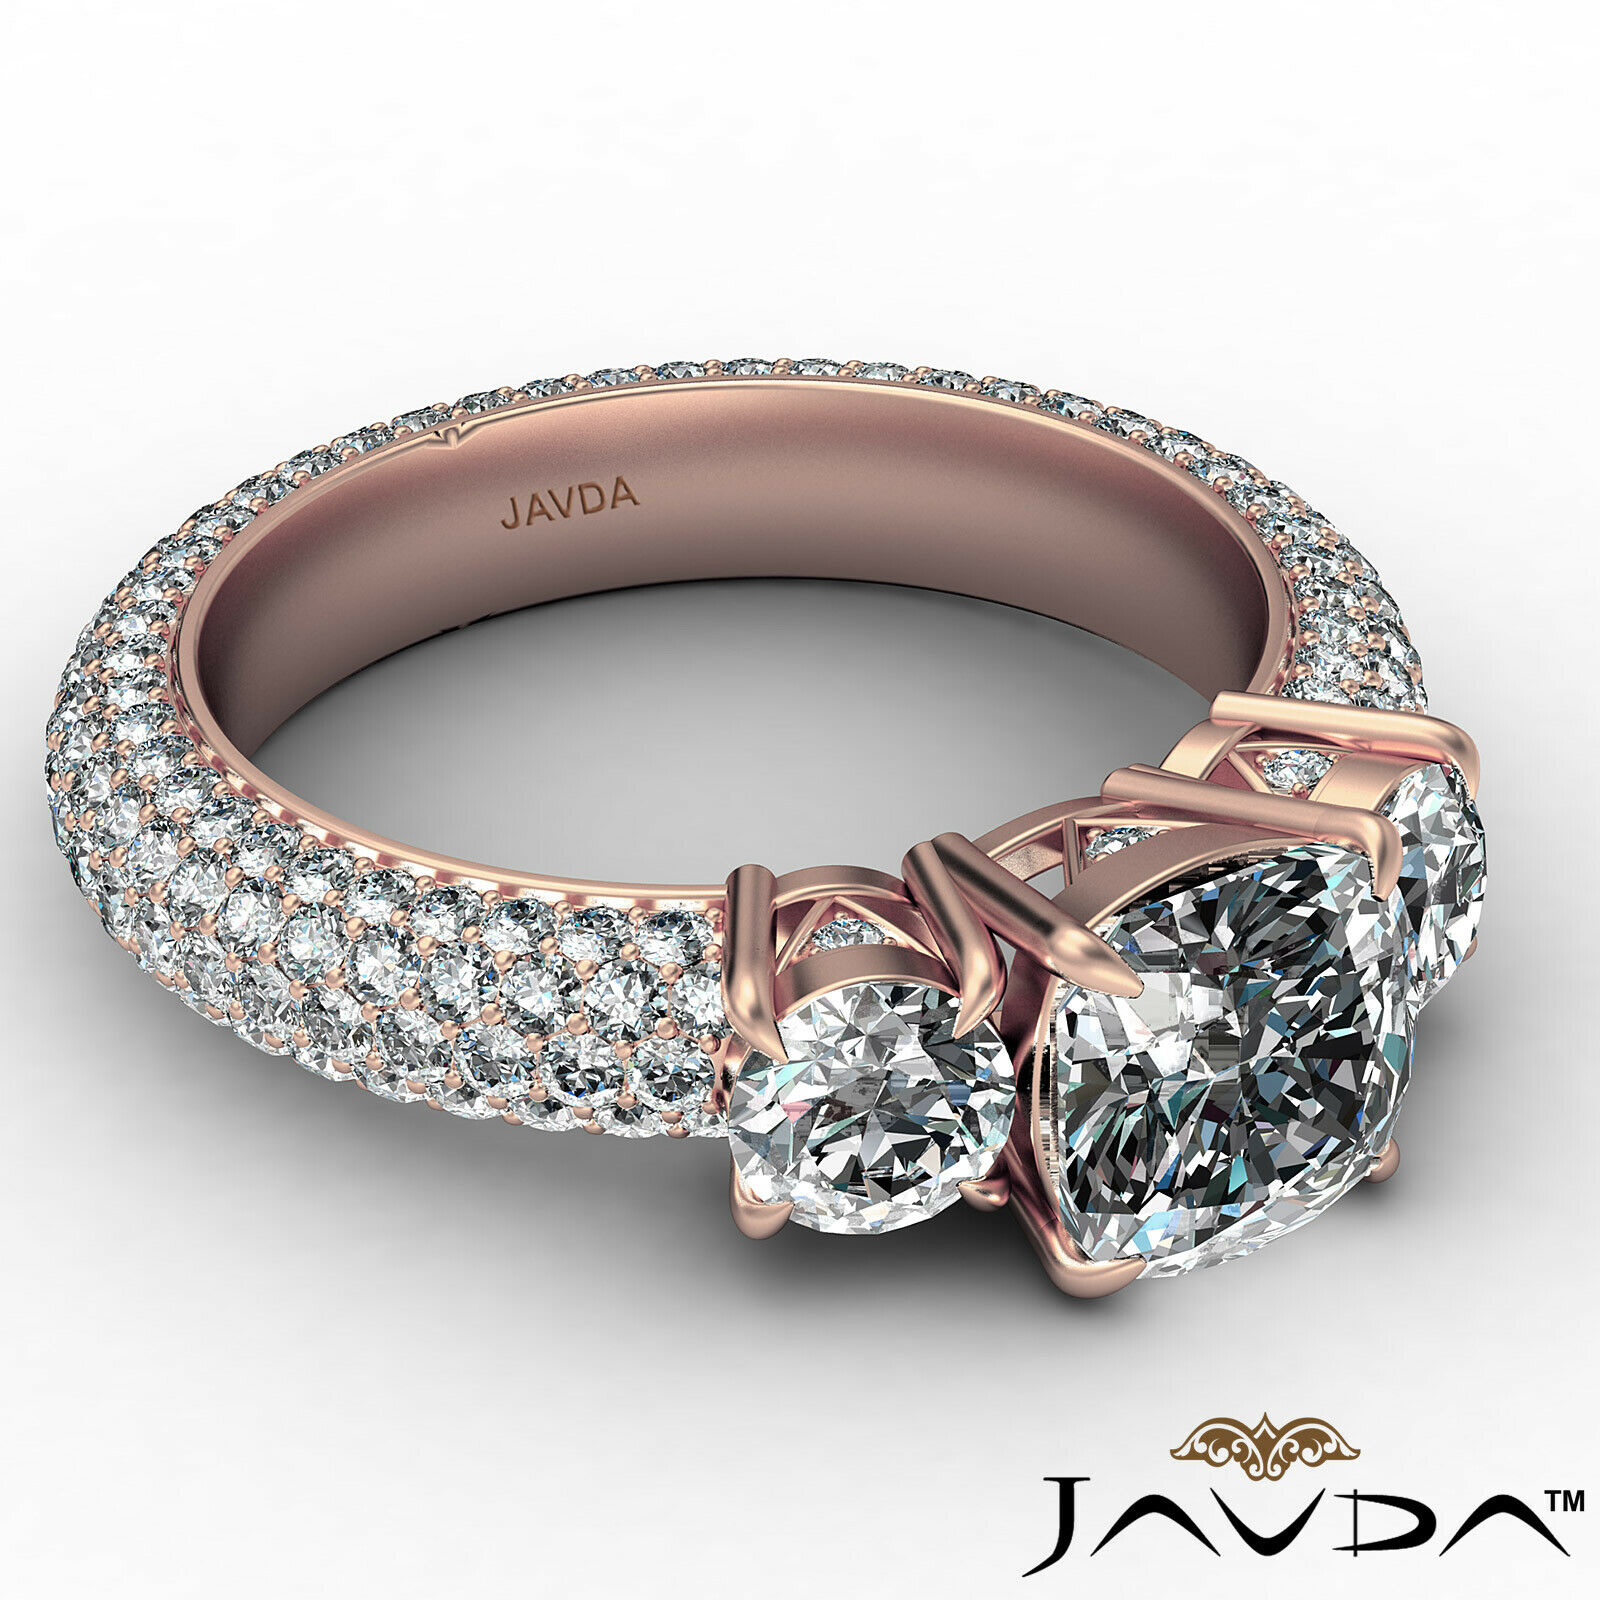 Cushion Diamond Engagement Ring Certified by GIA, G Color & SI1 clarity 3.44 ctw 8